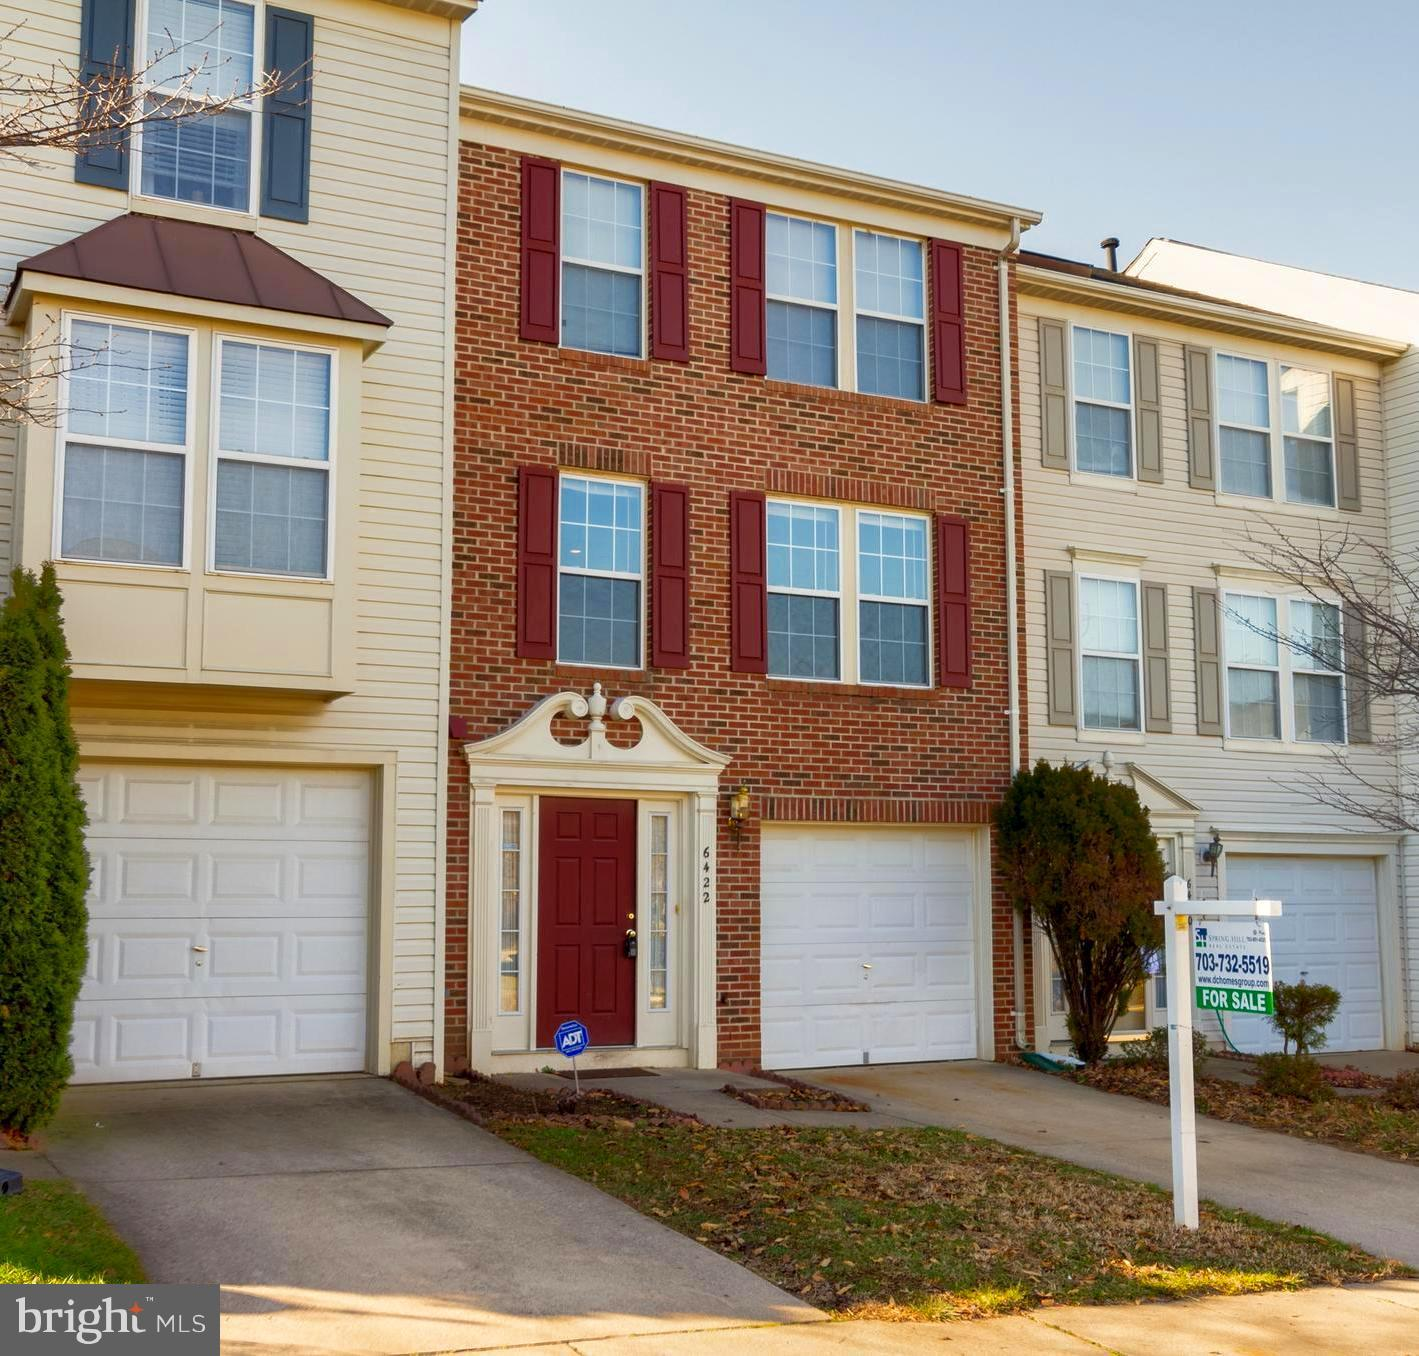 LOCATION, LOCATION!! Easy access to I-495, I-395, I-95, and HOA provided Rush hour shuttle to Franconia Metro Station! Welcome to this FRESHLY painted, spacious and sun-filled, three-level, brick-front, one-car garage with driveway townhome in the Japonica community. Recent upgrades such as newer  (less than 3 years old) HVAC, A/C unit and Water heater. Gleaming hardwood floors through out stairs, main and upper levels including bedrooms. Recess lighting in living and dining area. Spacious, sun-filled kitchen, with kitchen island and room for breakfast table, french doors leading to deck (in process of being painted) for enjoyment and entertainment. Ceramic tile in kitchen, bathrooms, foyer and throughout lower level. Half-vaulted ceiling in master bedroom, and walk-in closet. Cozy fireplace, family room and fenced in patio in lower level.  Close to Franconia Metro Station and easy access to  I-495, I-395, I-95. Minutes away from Kingstowne and Springfield Town Center for shopping, dining and entertainment! Community amenities include: pool and club house. Enjoy Park, tot lots, tennis courts, and trails all within walking distance.